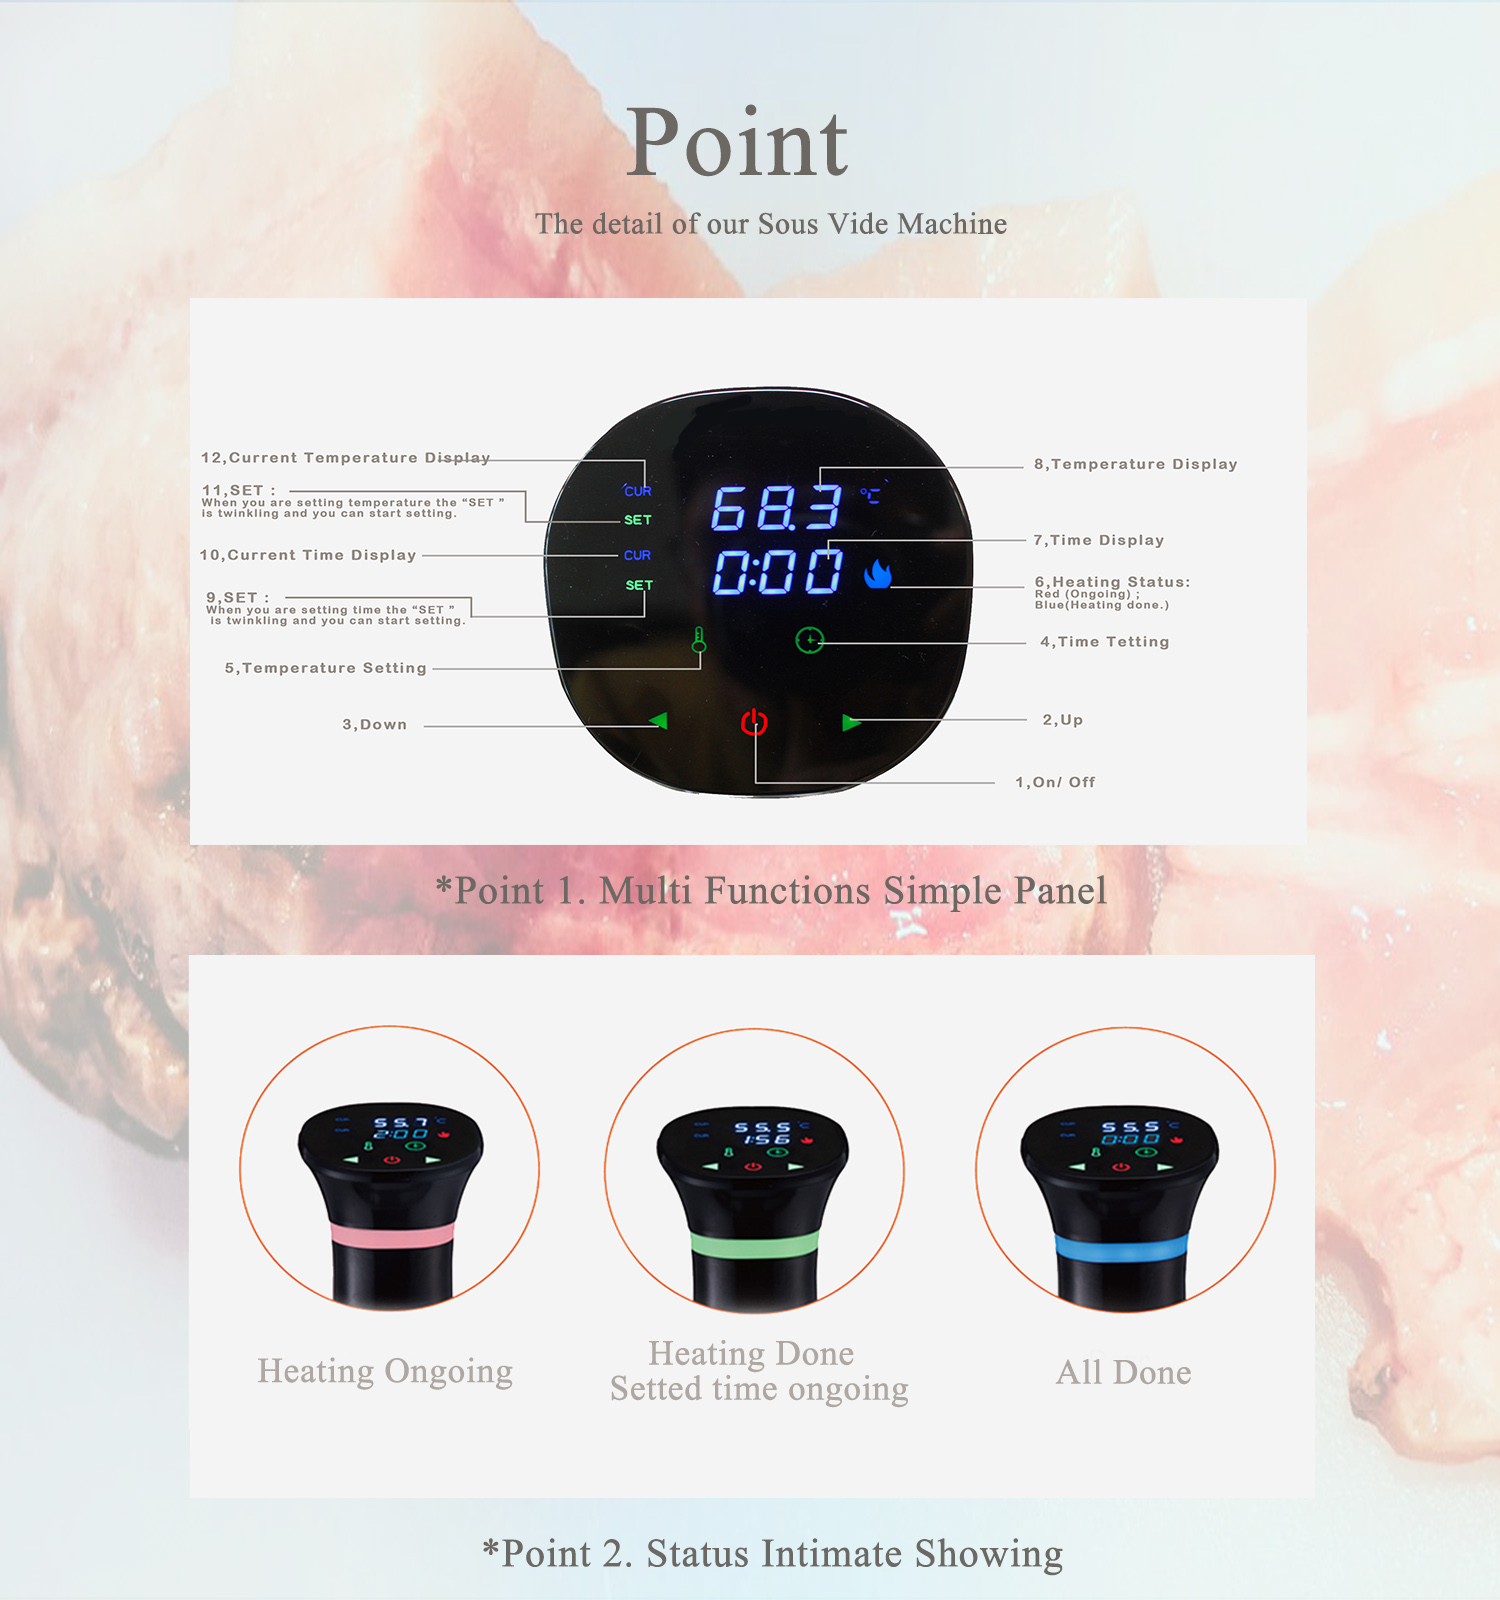 KCASA WIFI Kitchen Sous Vide Cooker Immersion Circulator With Accurate Temperature Control Digital Display